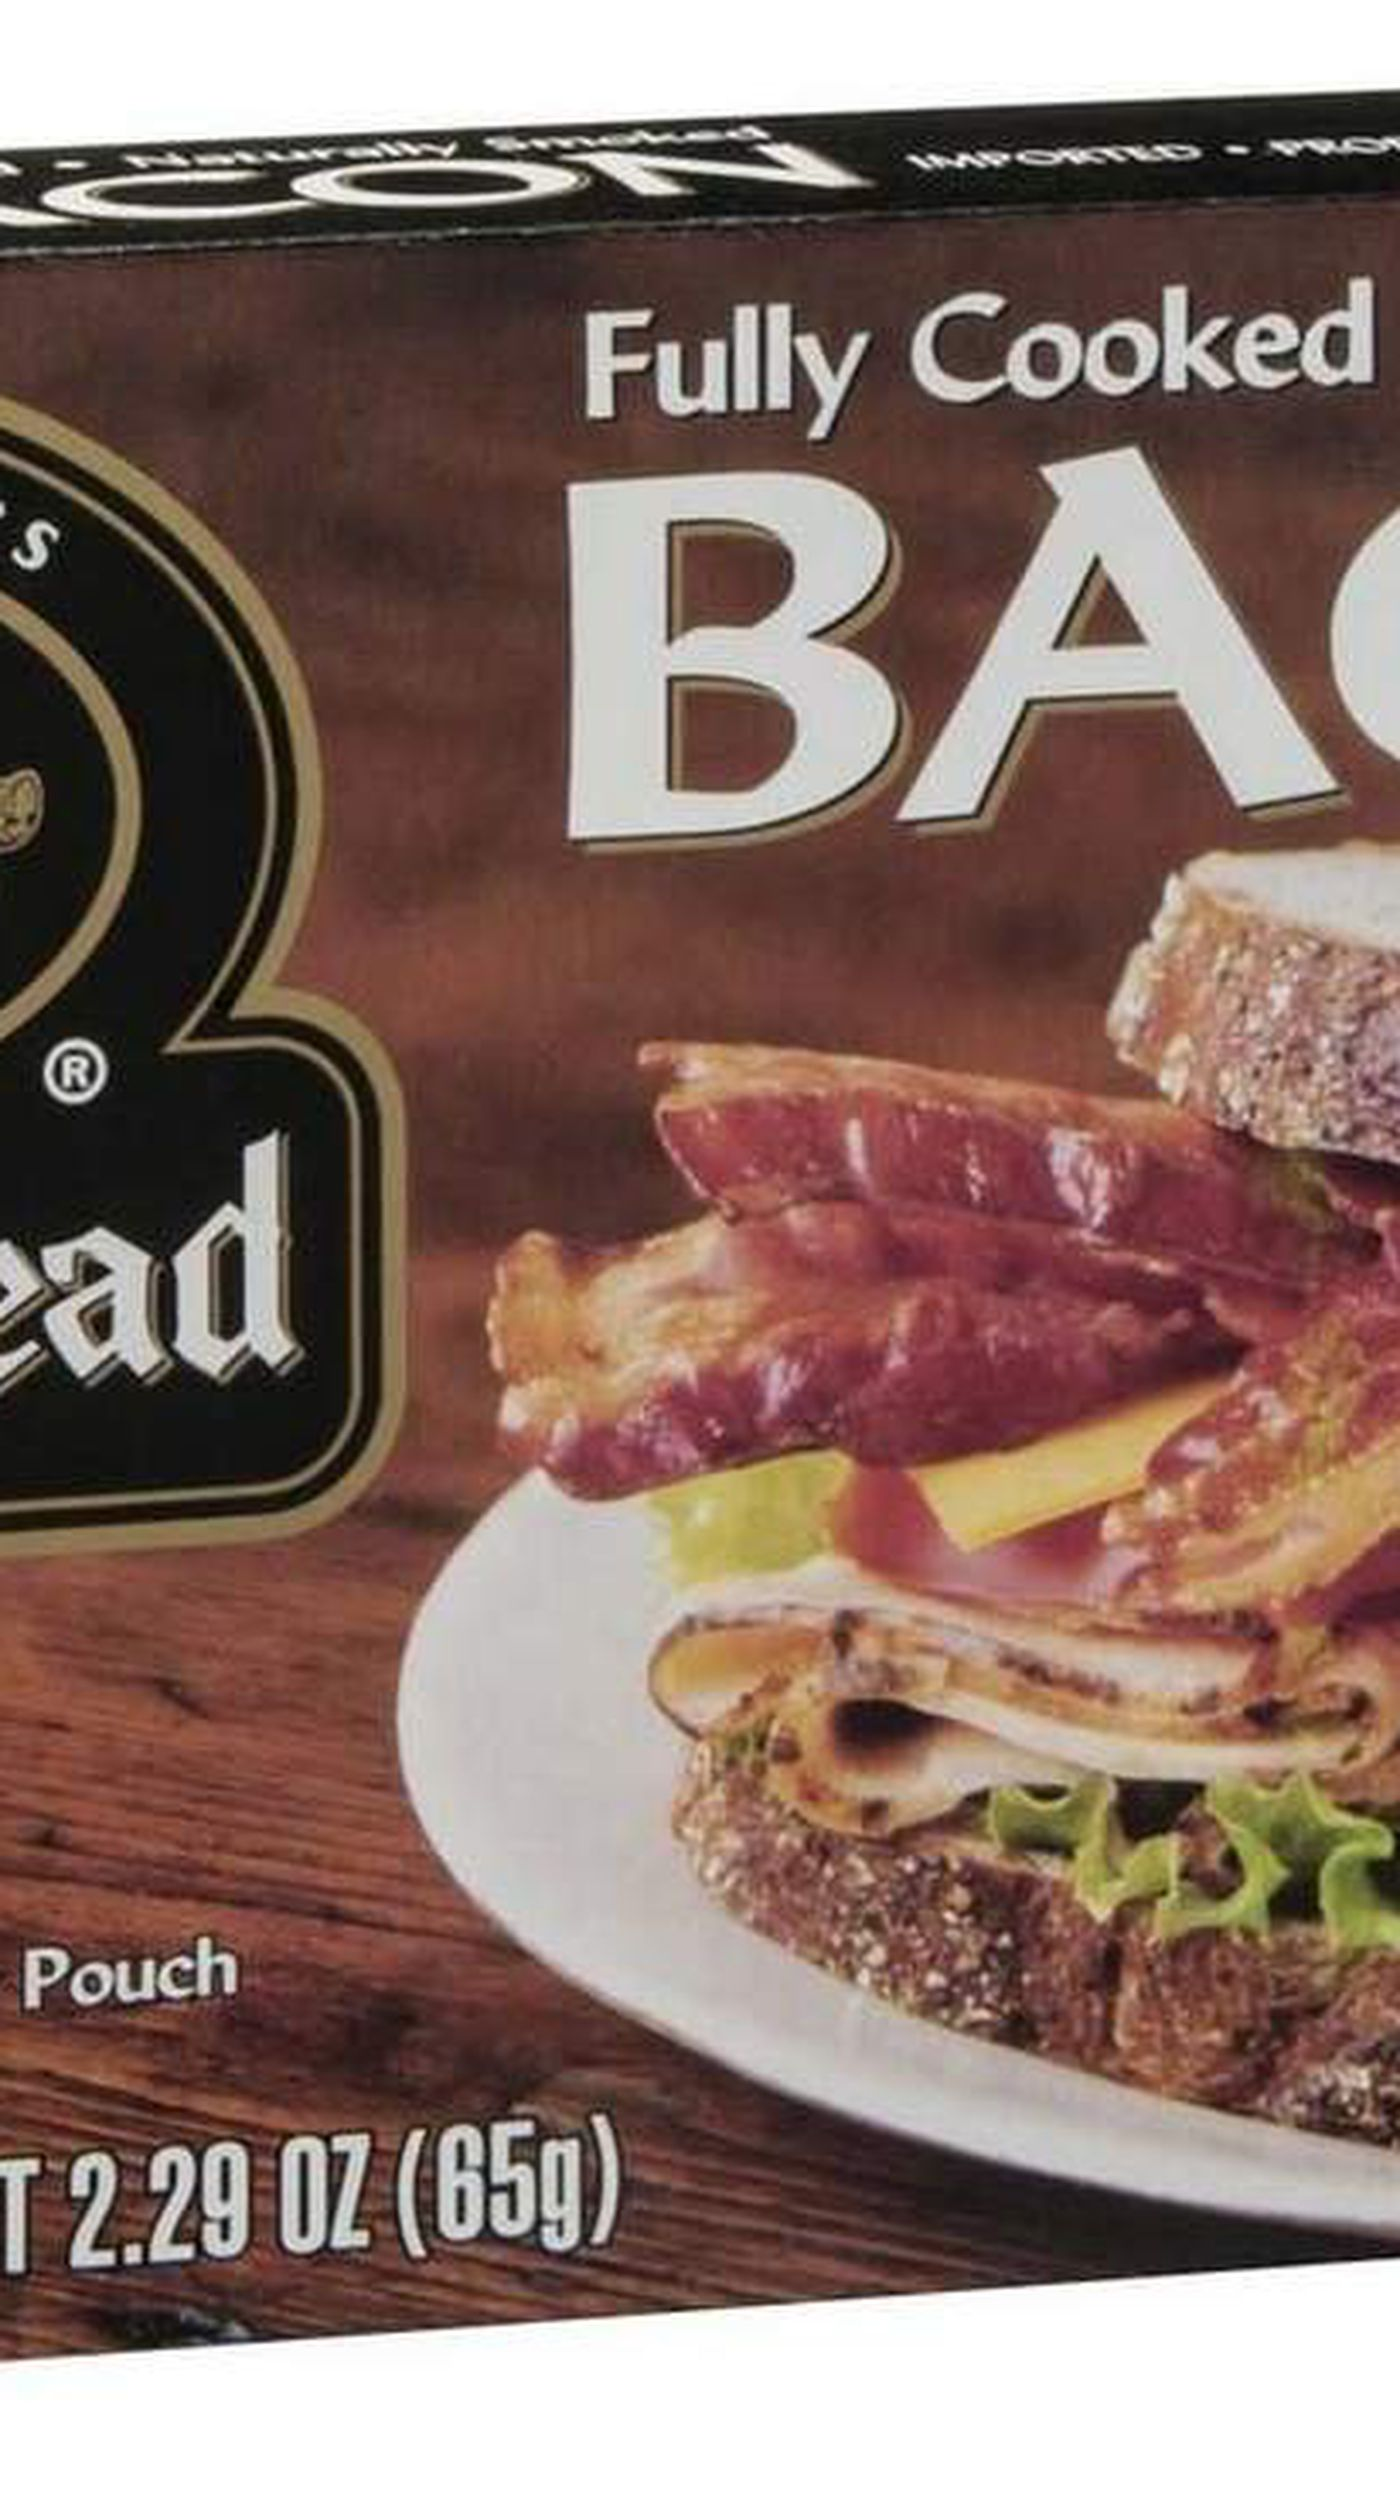 brands of pre-cooked bacon